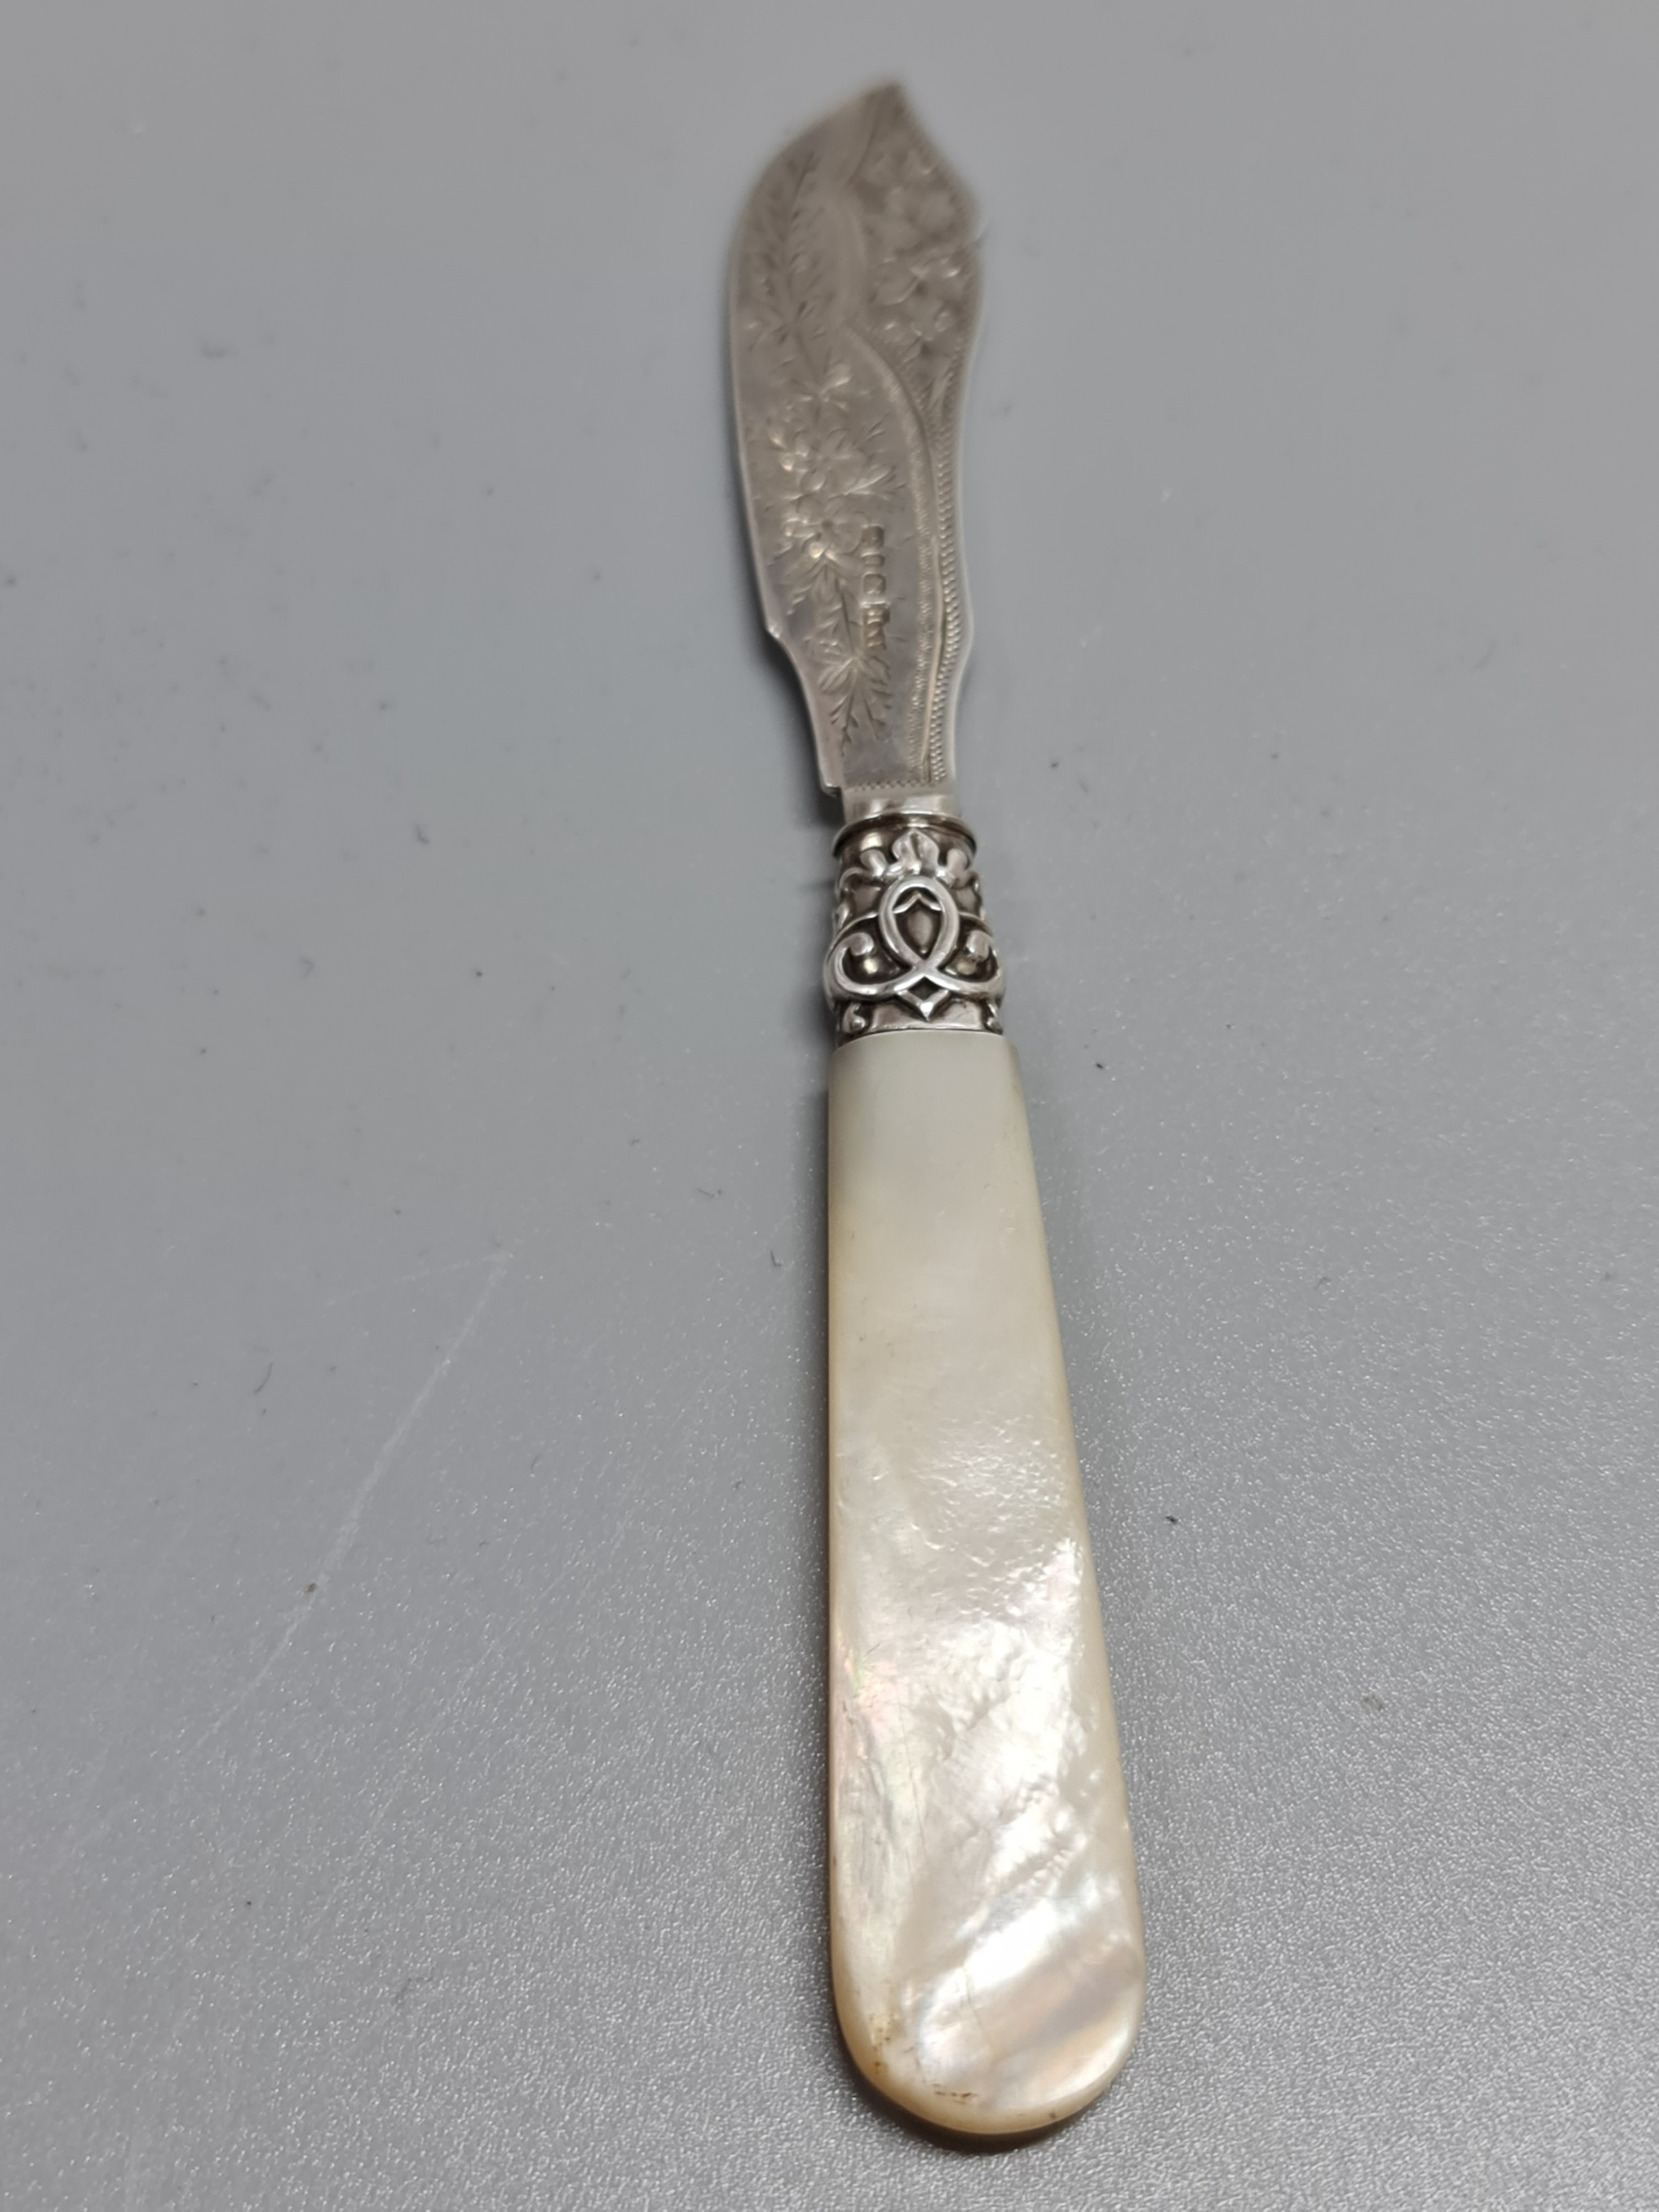 exquisite quality hm silver engraved butter knife with mop handle birm 1890